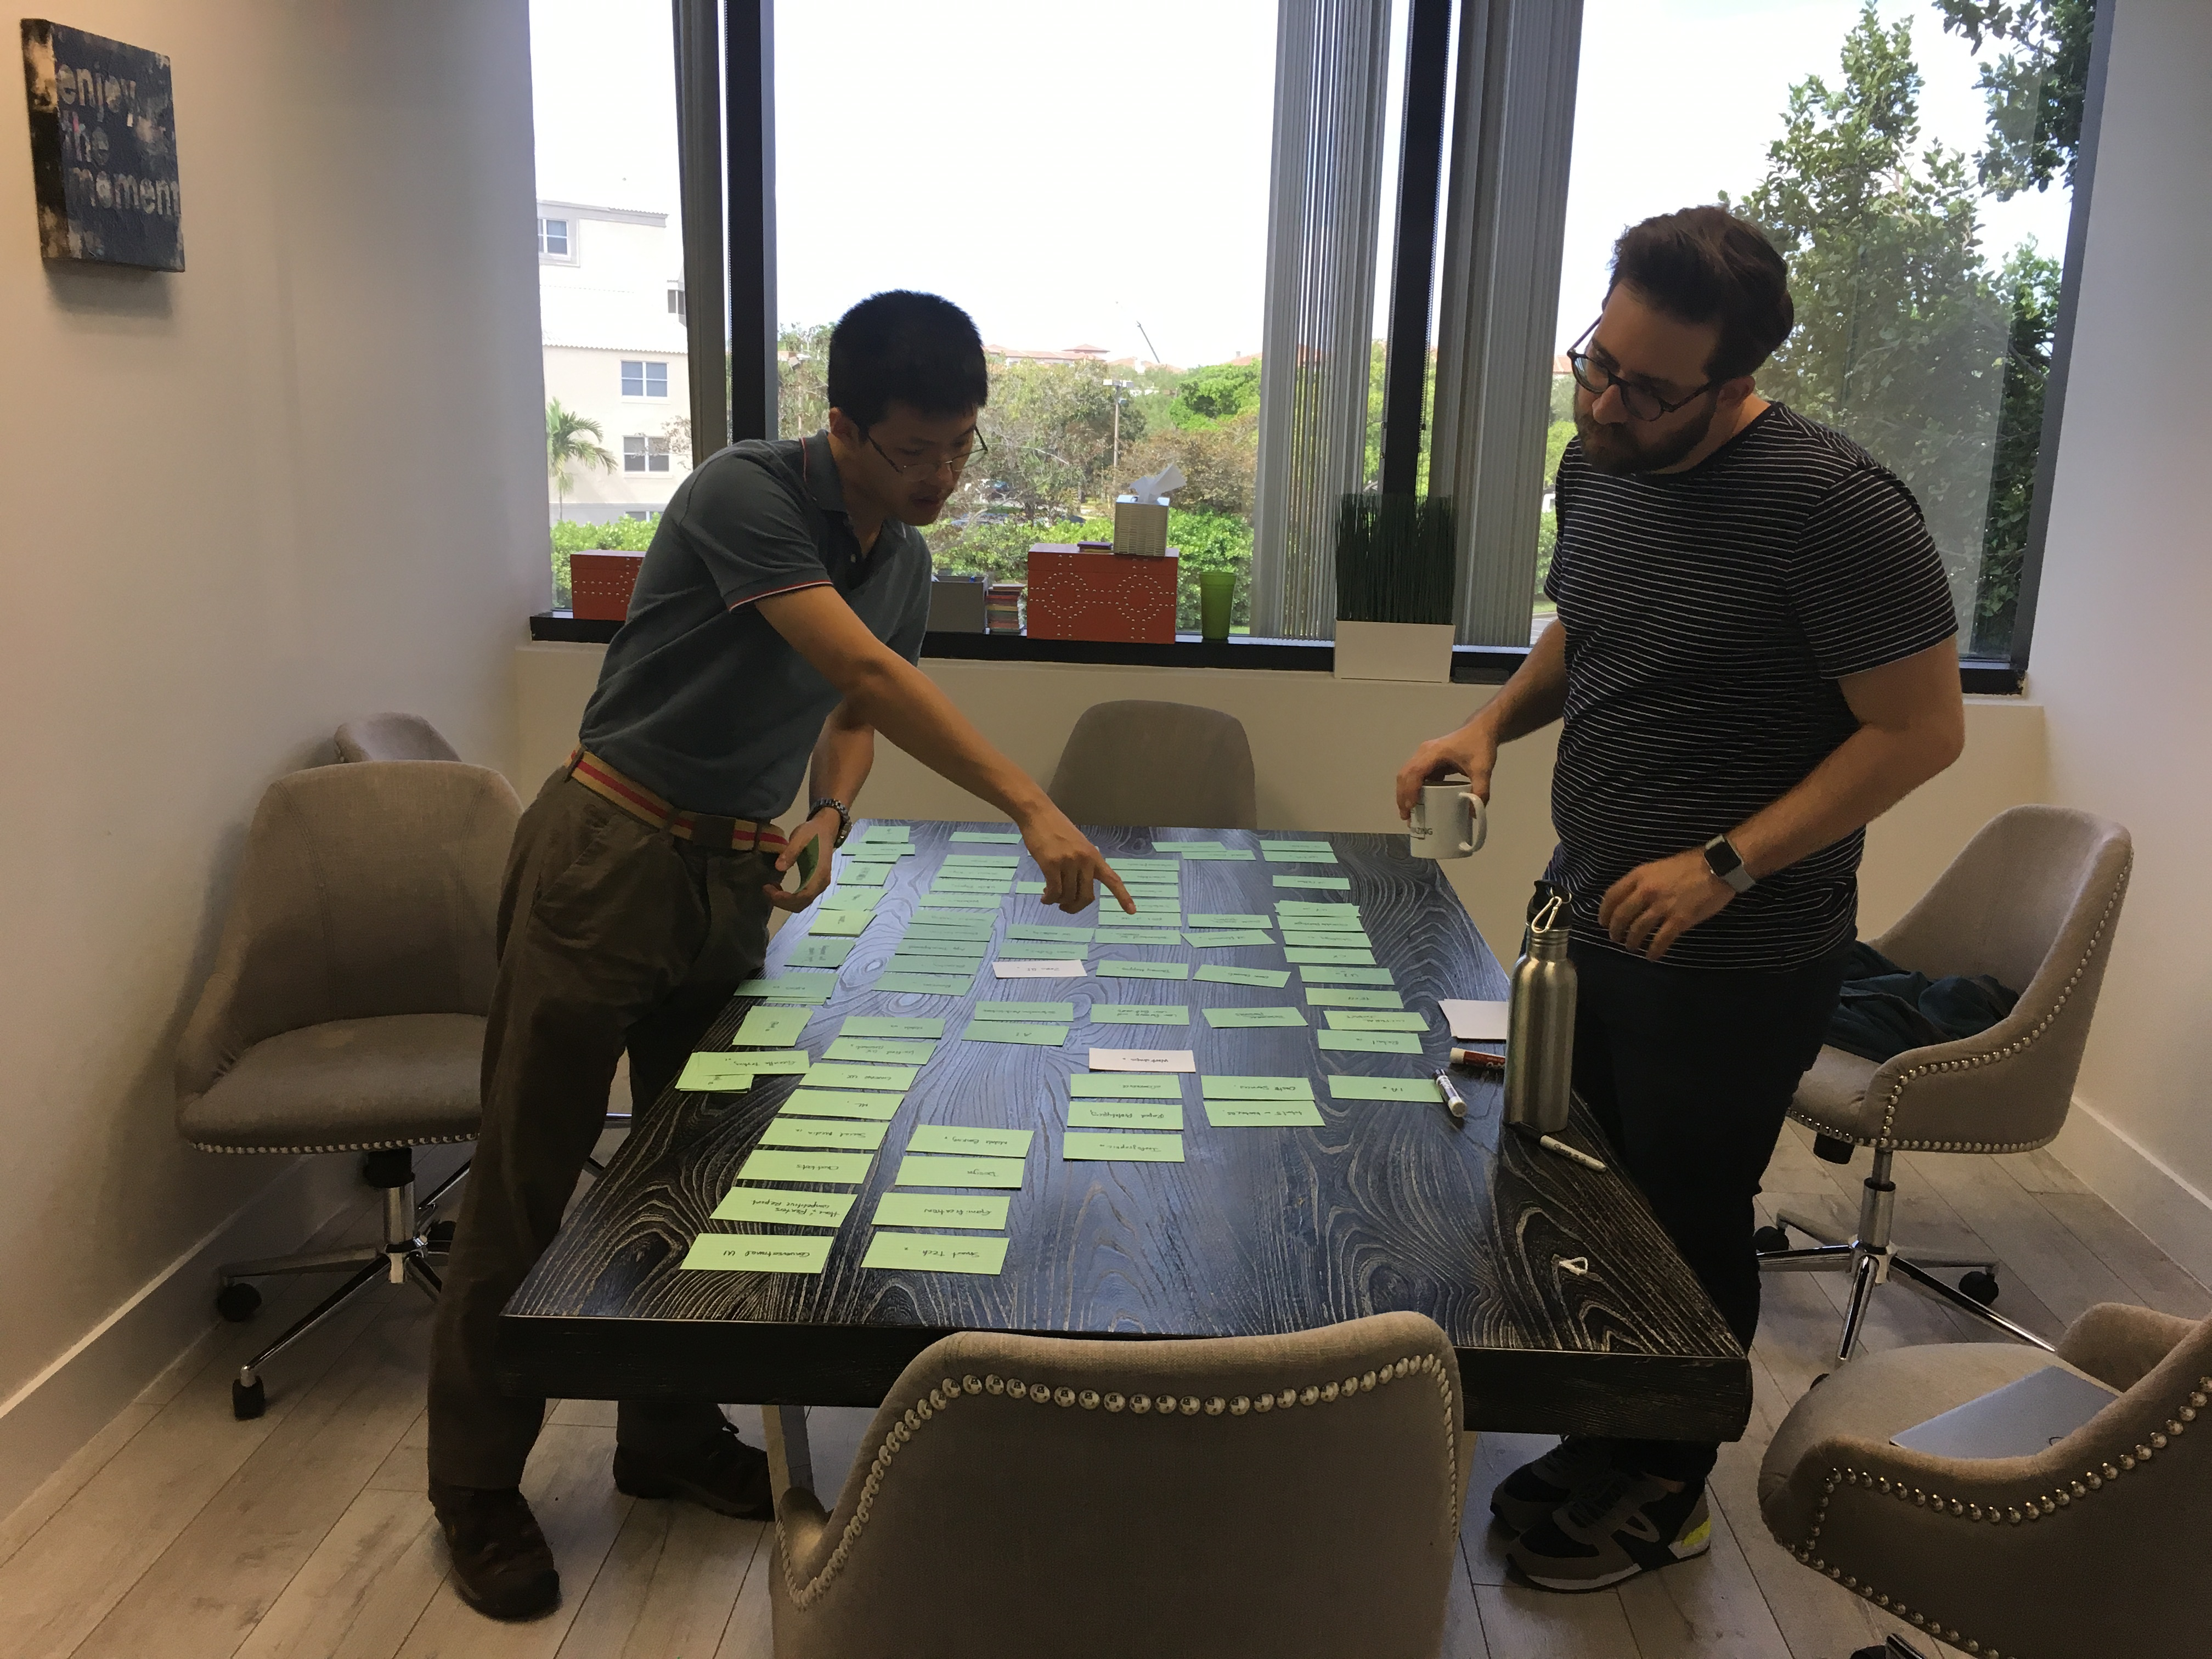 Affinity Diagrams and Clustering